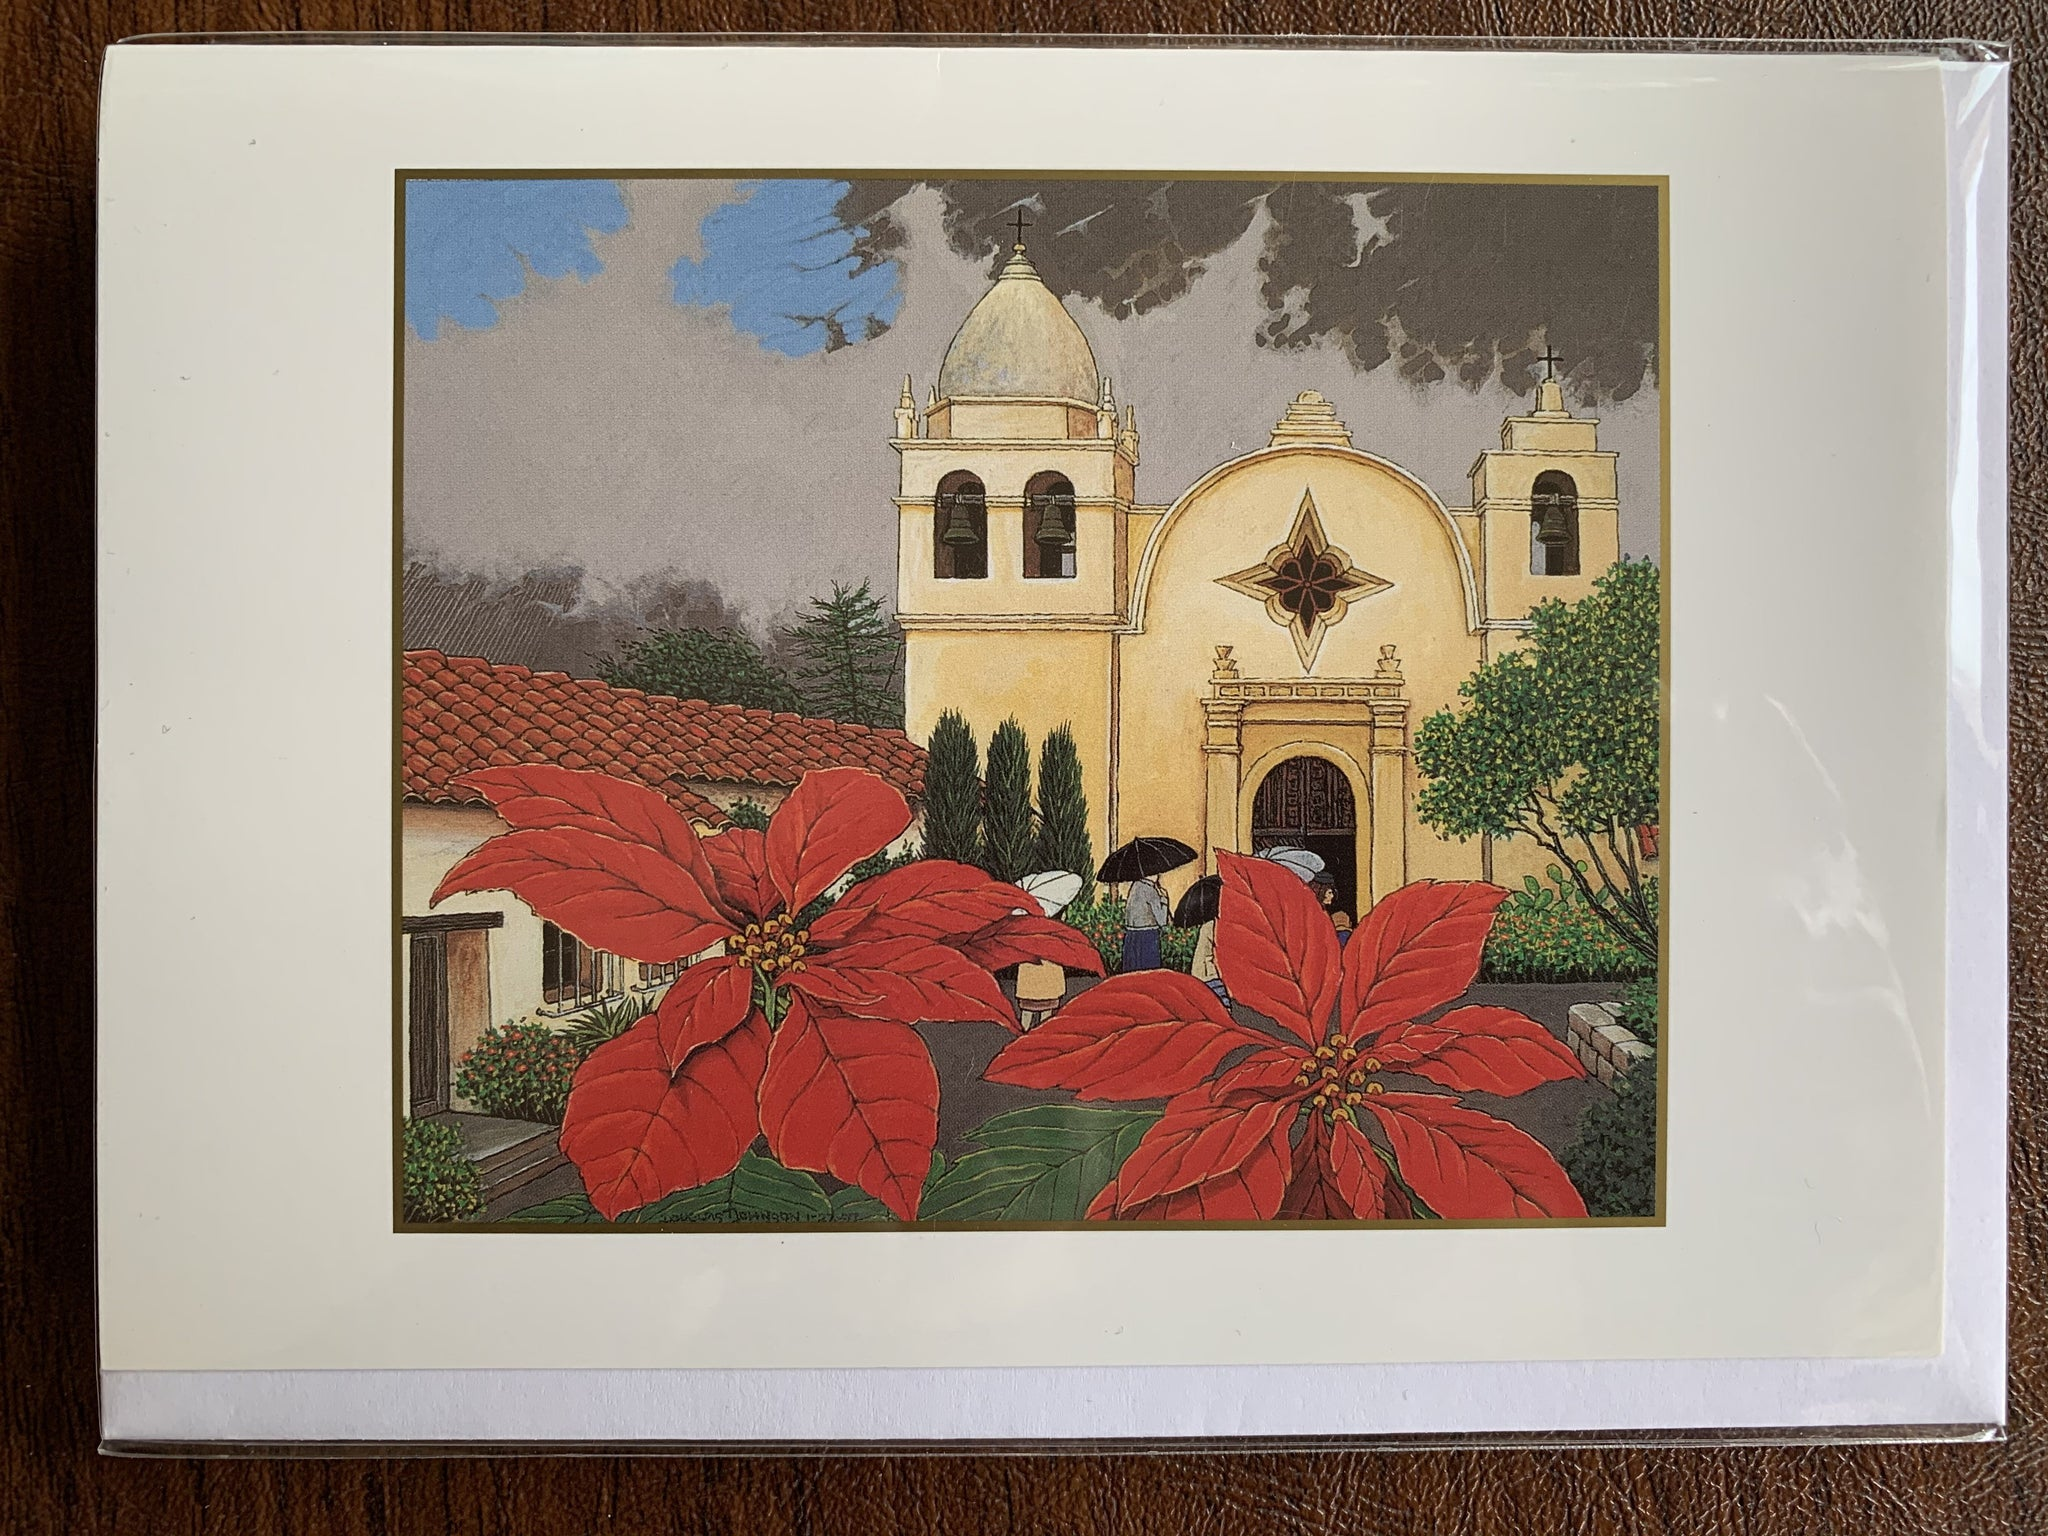 Mission San Carlos Borromeo, 1997 by Douglas Johnson (choose boxed or single cards)